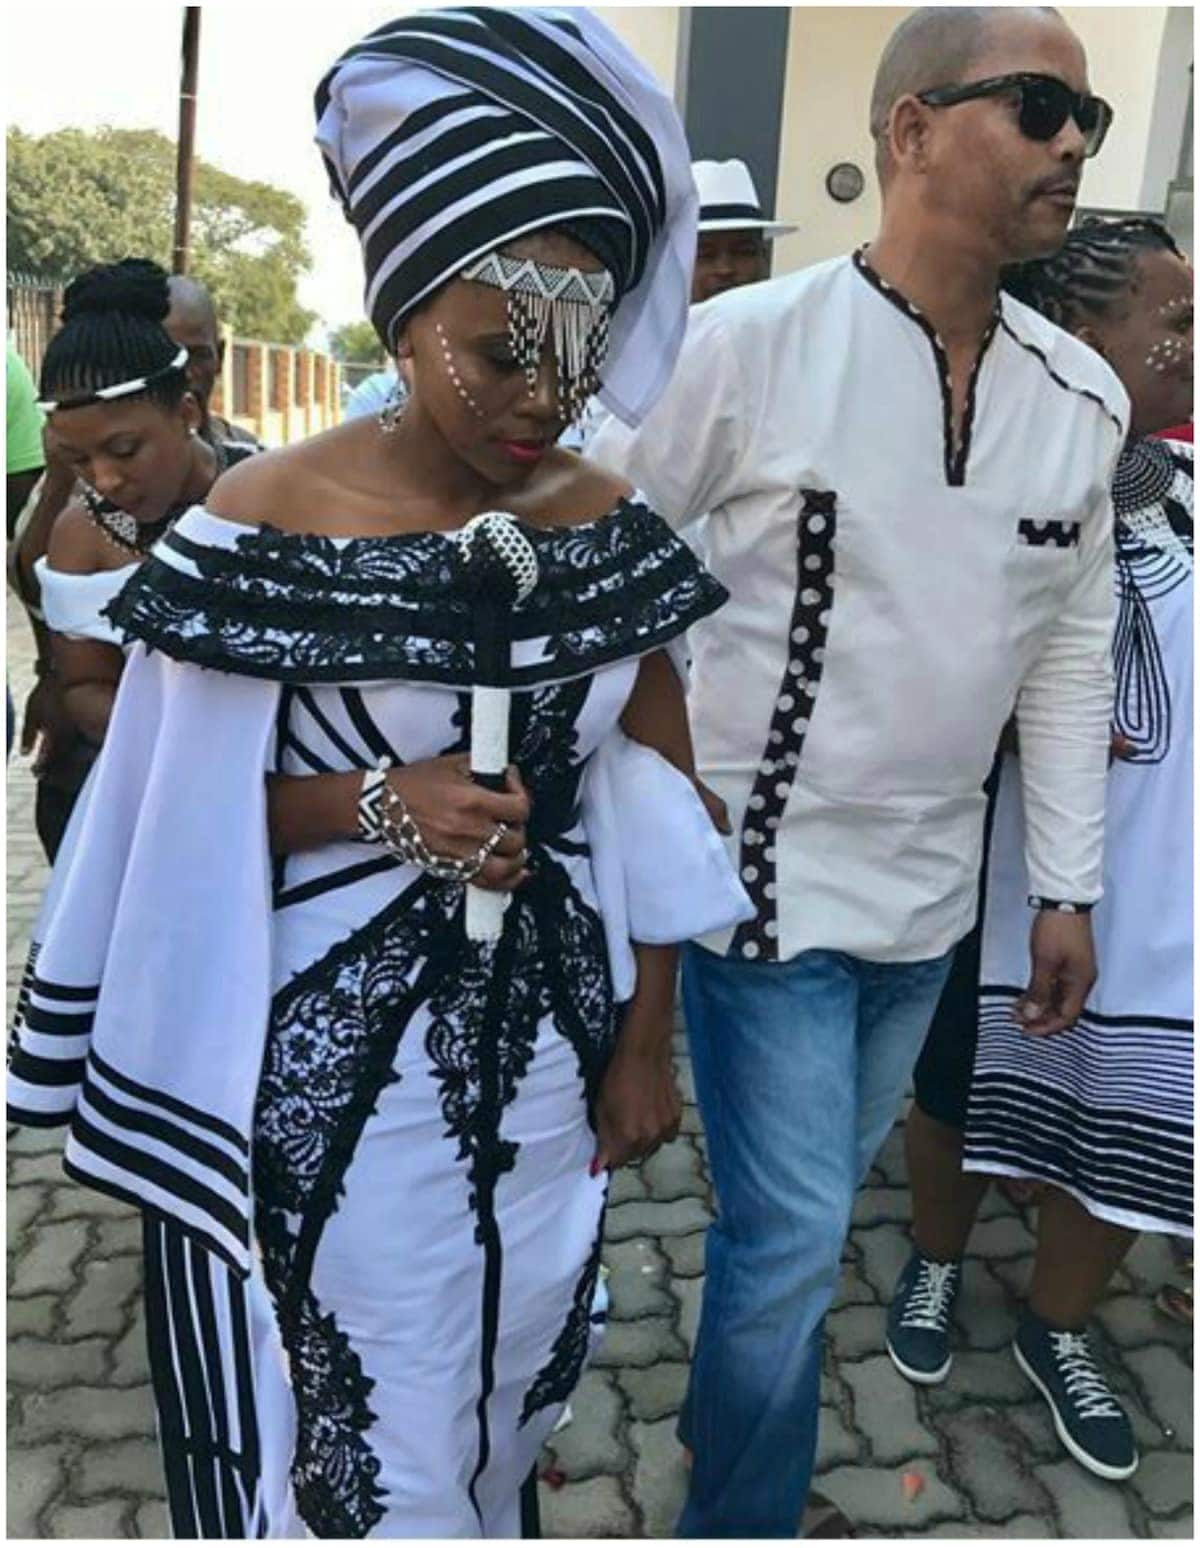 Xhosa traditional wedding attire Xhosa traditional attire for wedding Xhosa traditional wedding attire for bride and groom